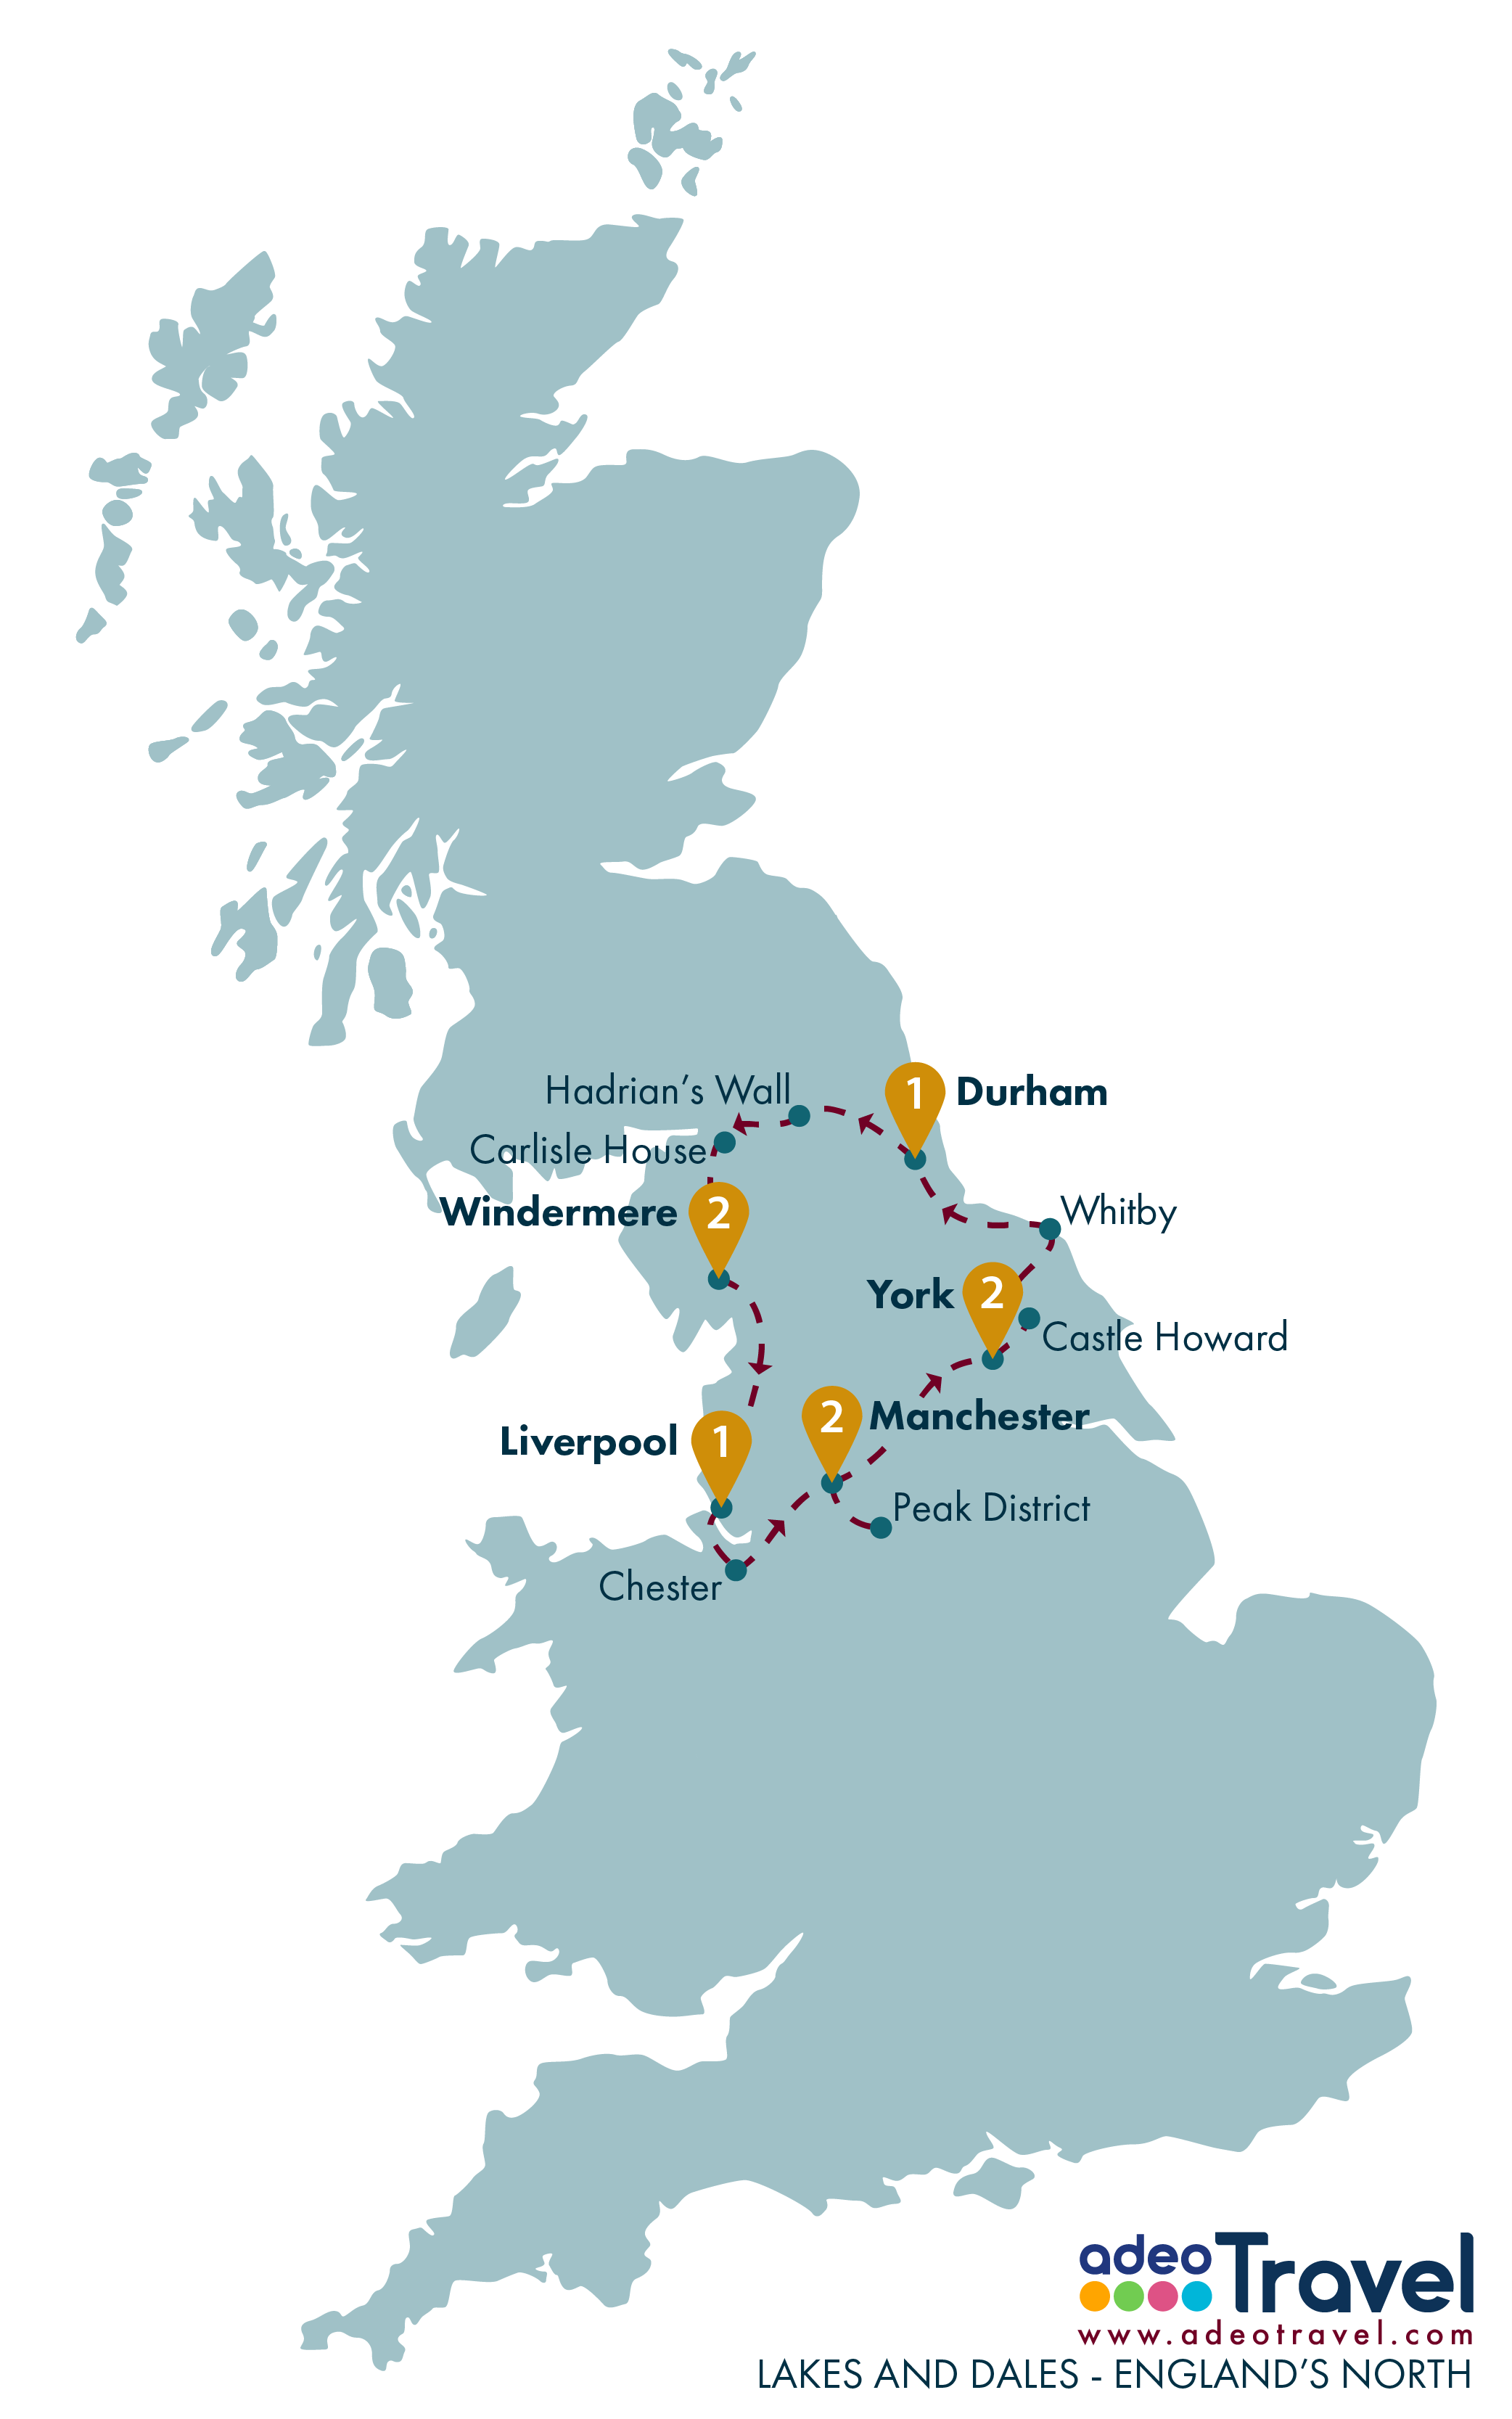 Tour Map - Lakes and Dales - Englands North